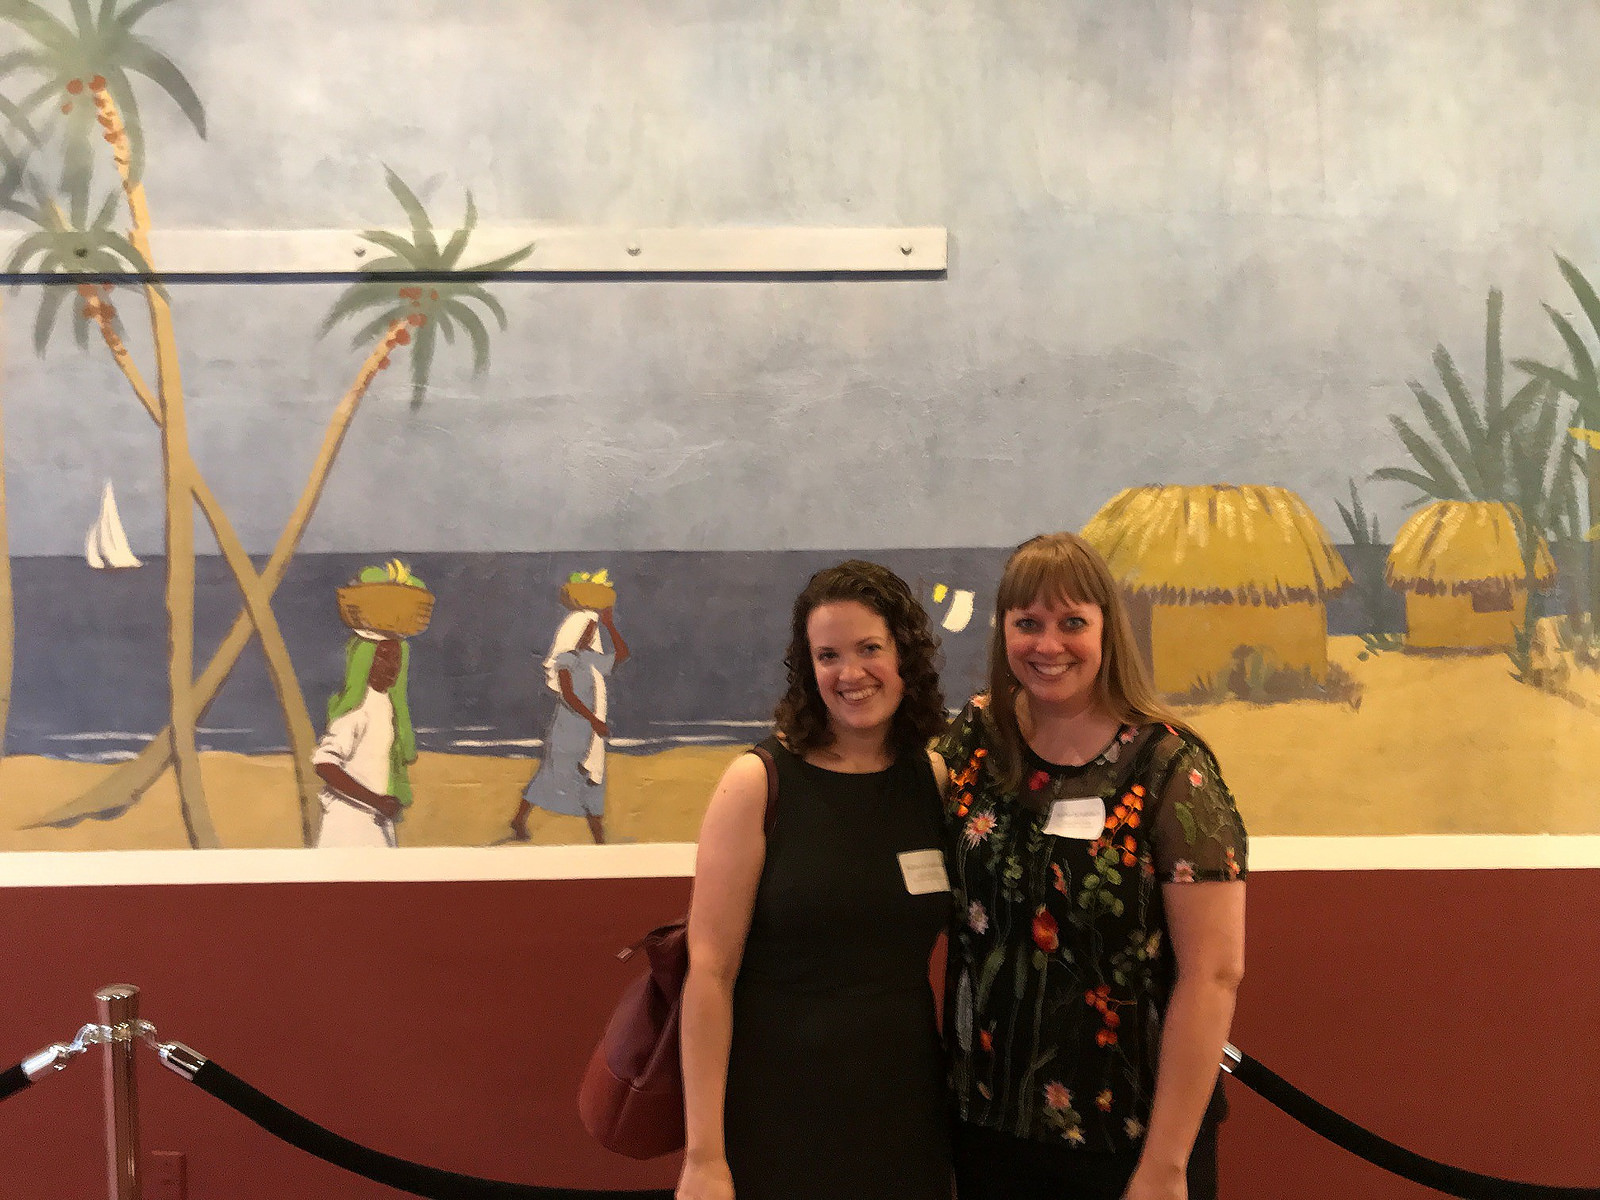 The Conservation Center's Painting Conservators, Rebecca Vodehnal and Amber Schabdach, in front of the finished west wall